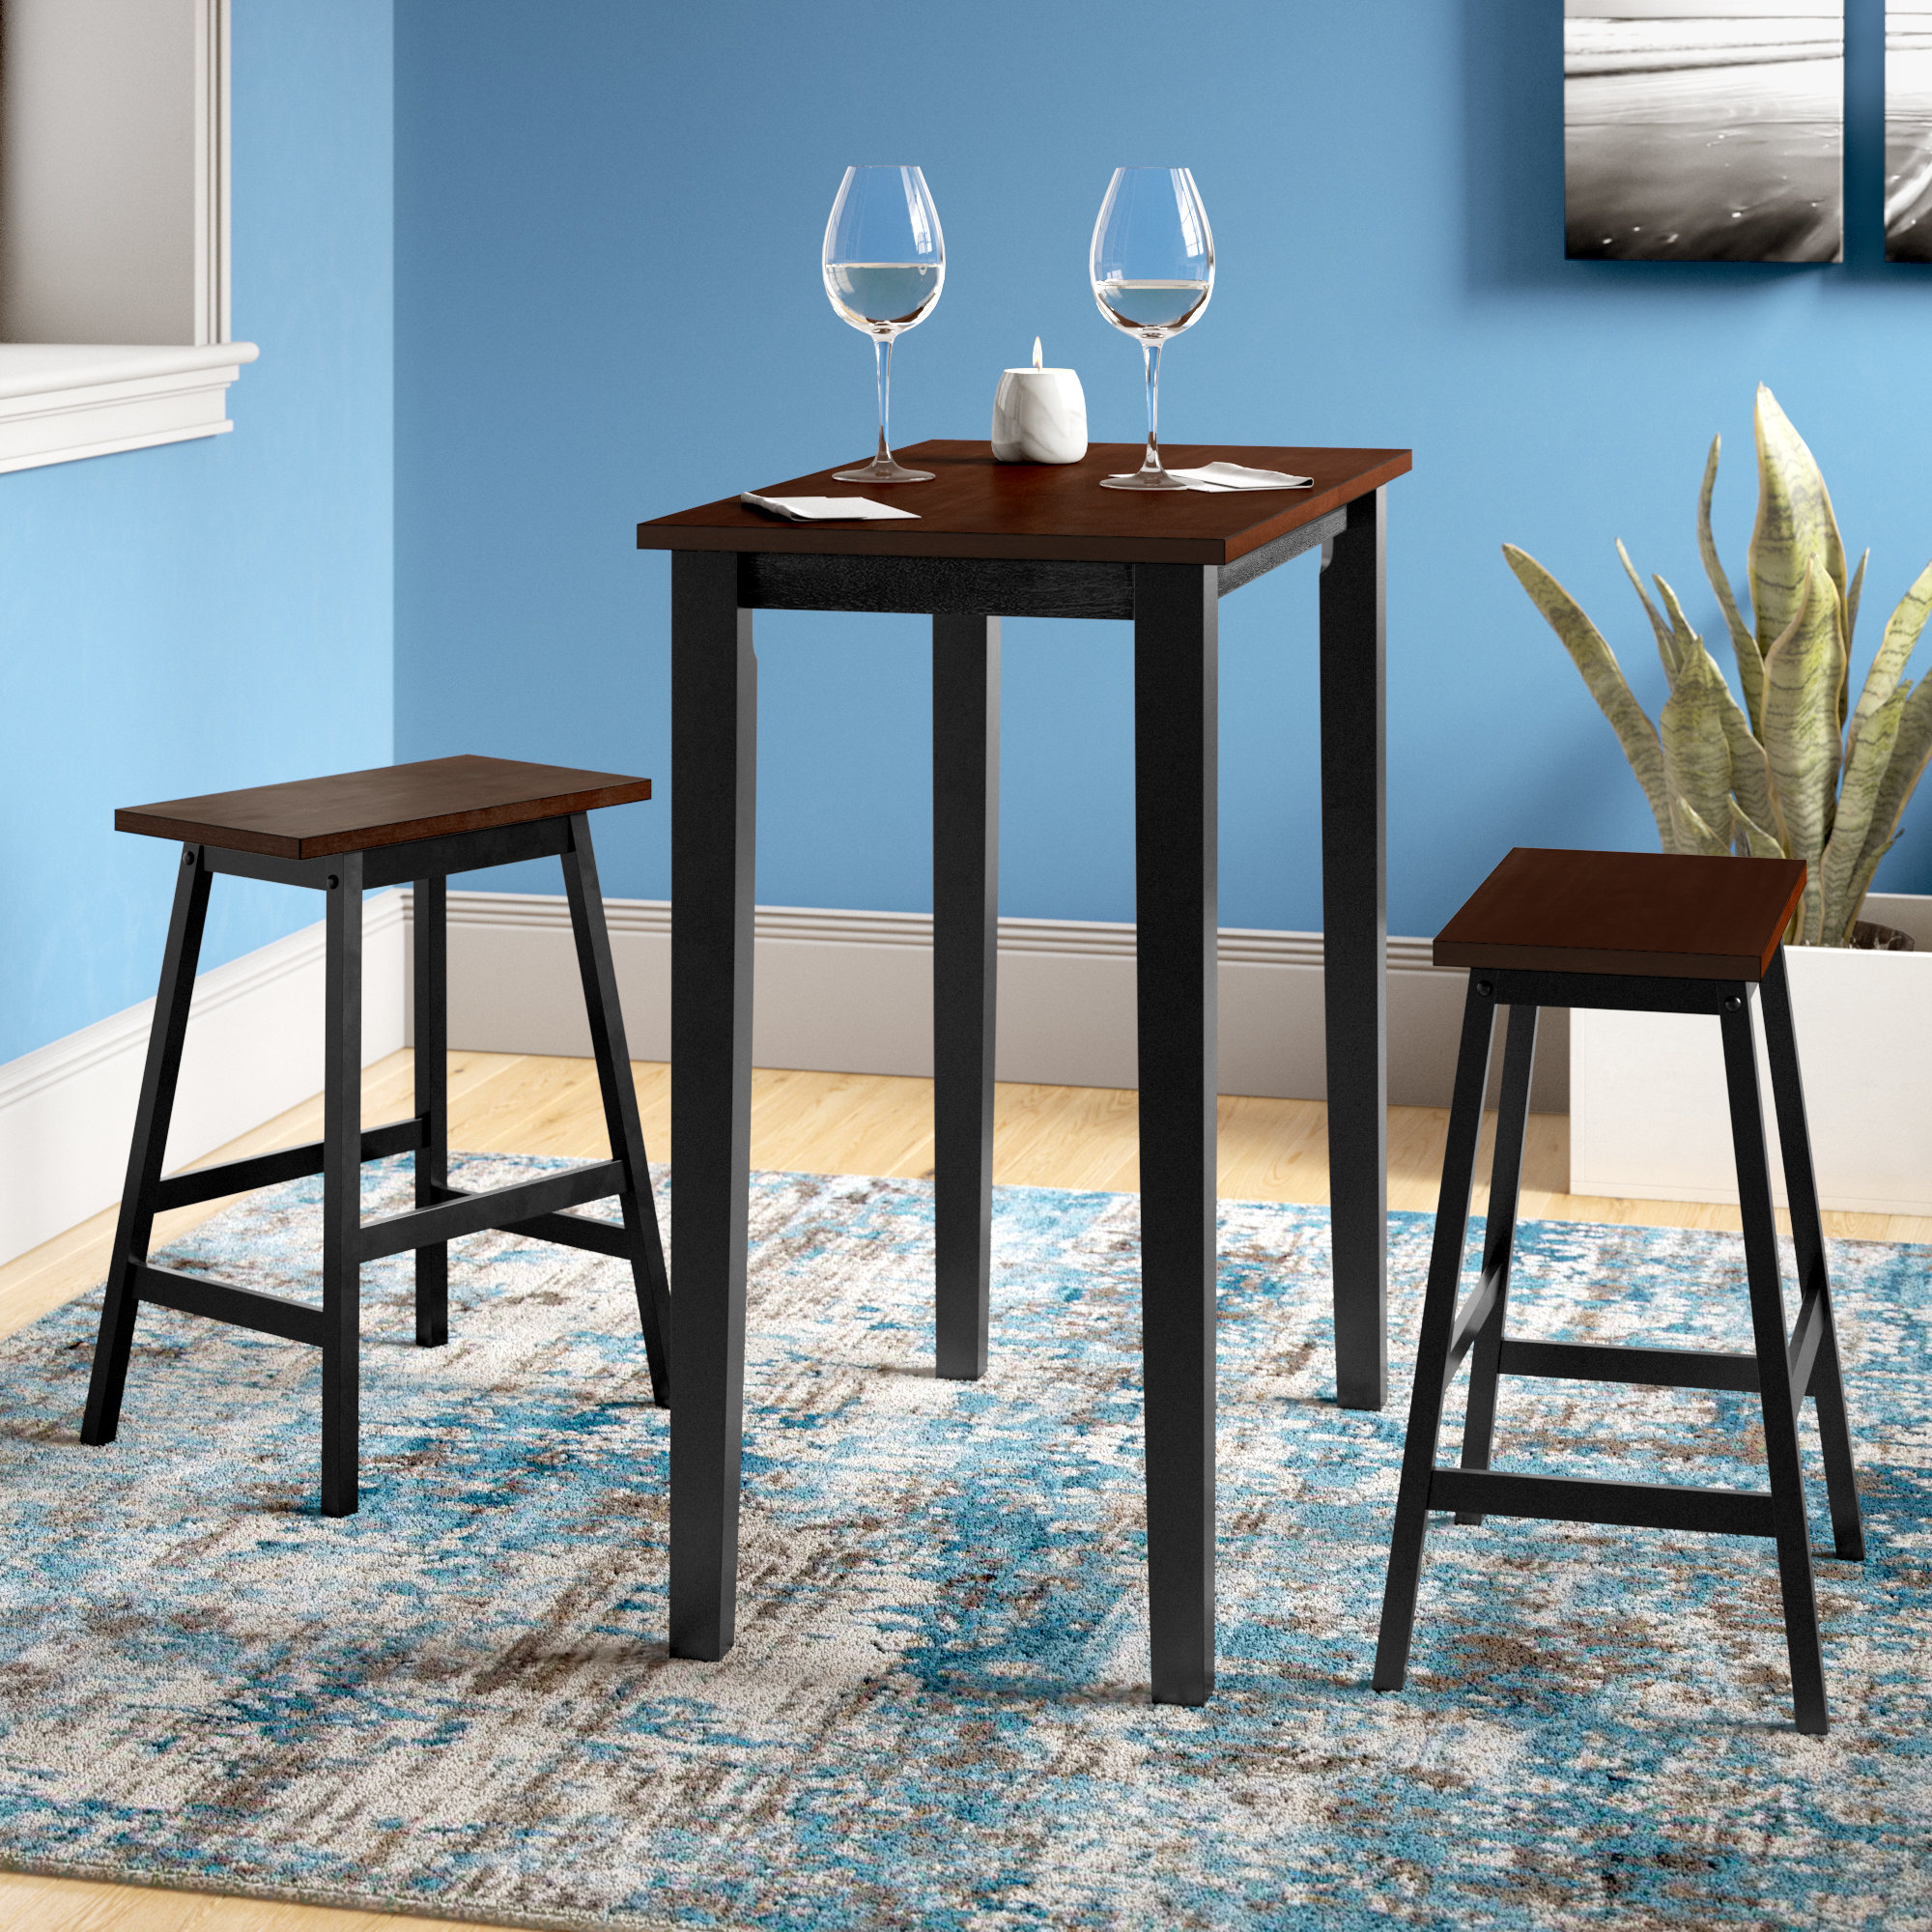 Wayfair Within Ryker 3 Piece Dining Sets (View 5 of 25)